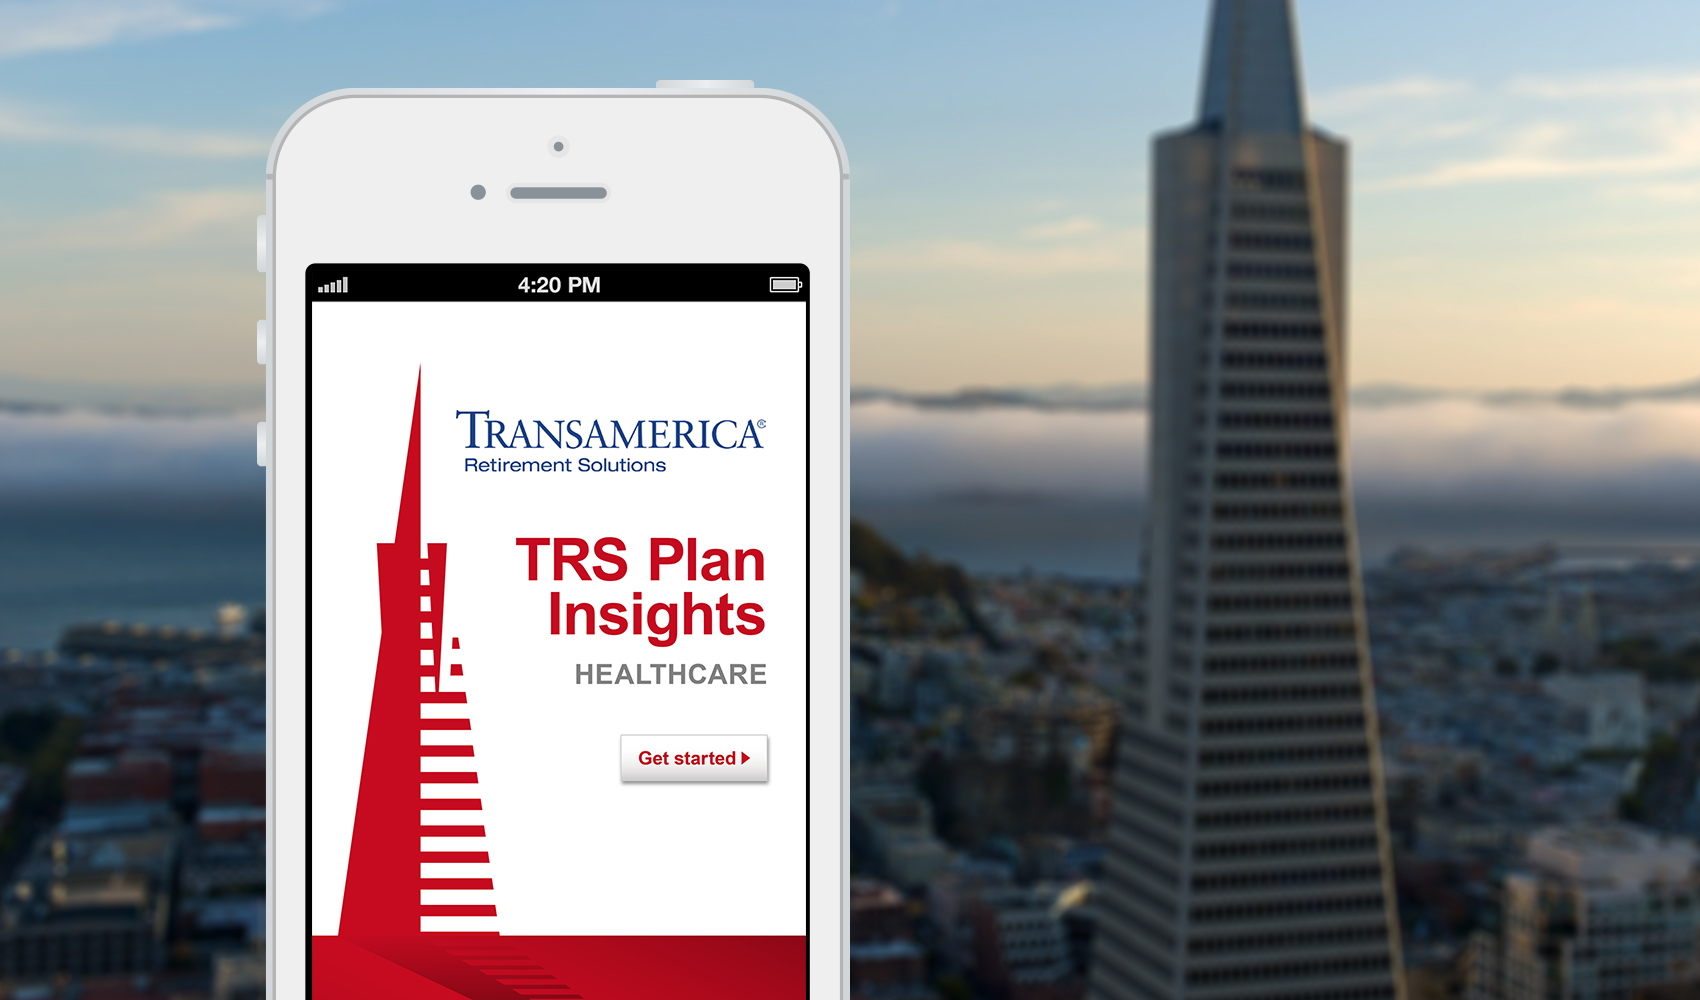 Transamerica / TRS Plan Insights - Vanguard